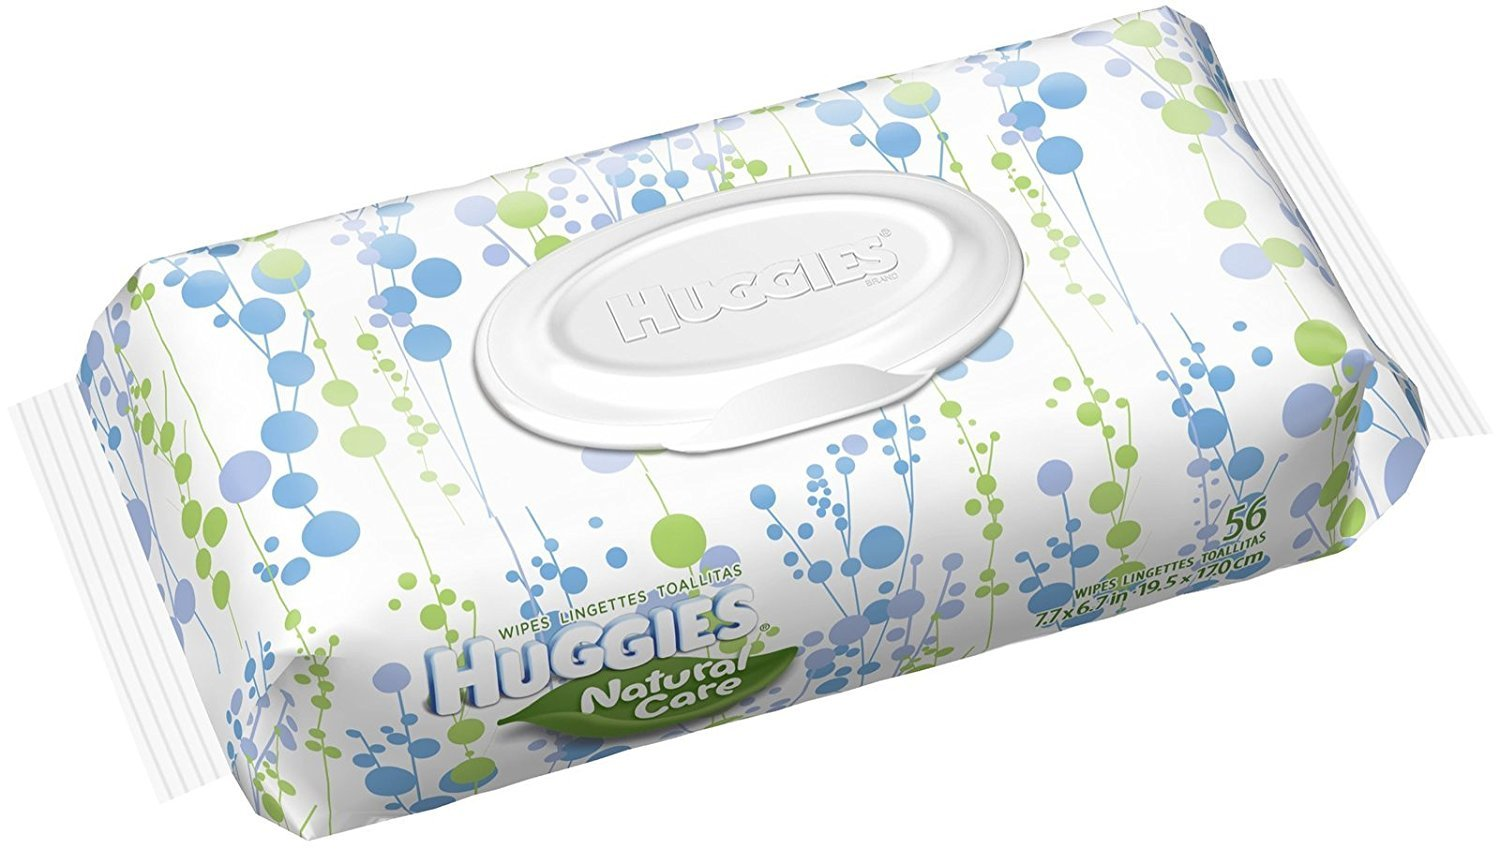 Huggies Natural Care Fragrance Free Baby Wipes X 56 CT (Pack of 16): Amazon.com: Grocery & Gourmet Food